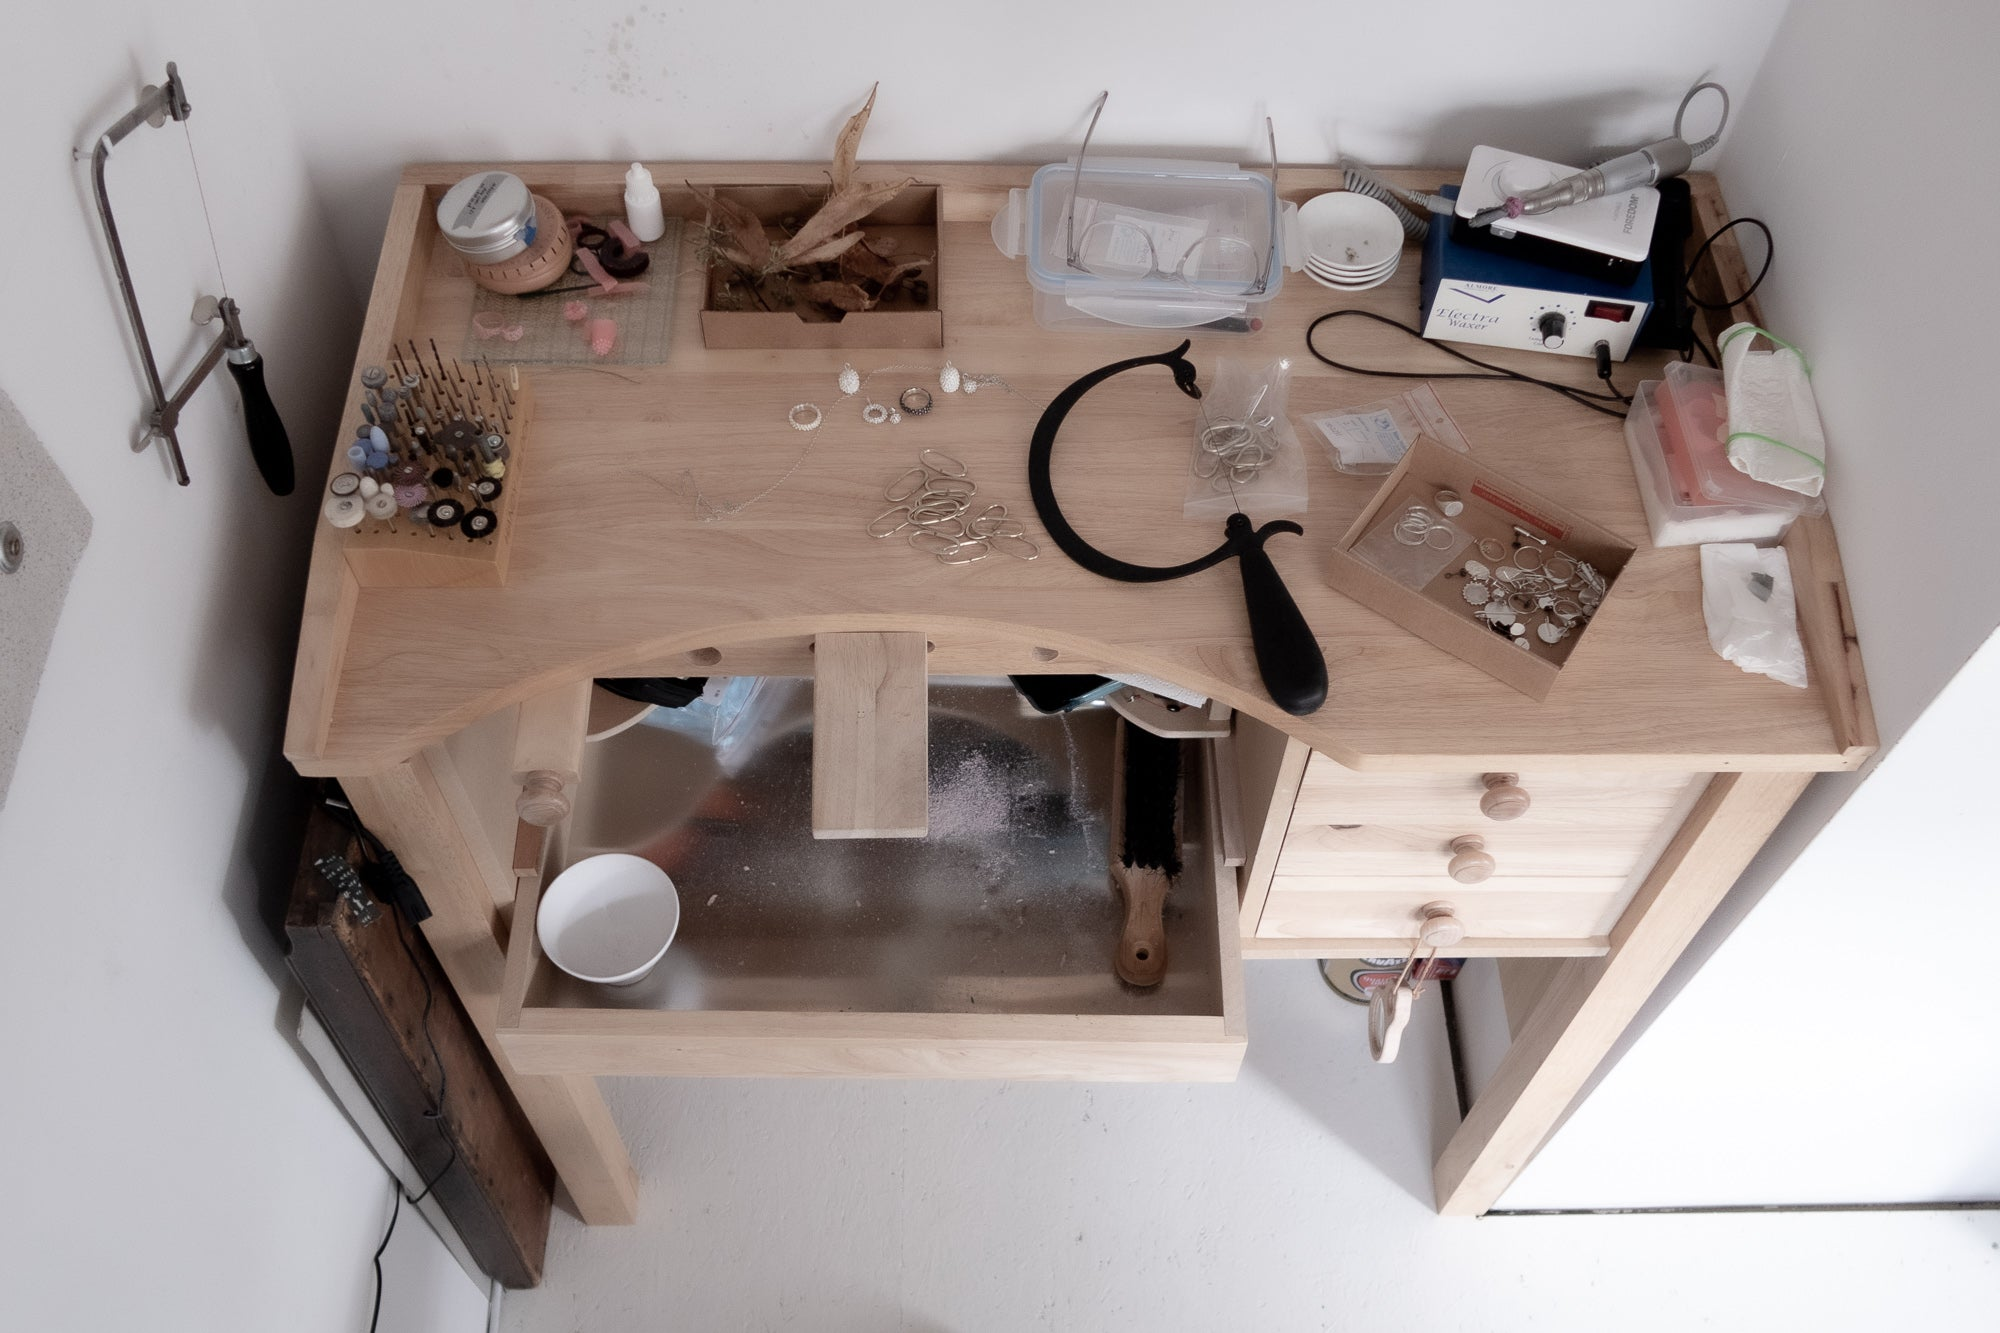 daphne van der meulen jewelry bench work space